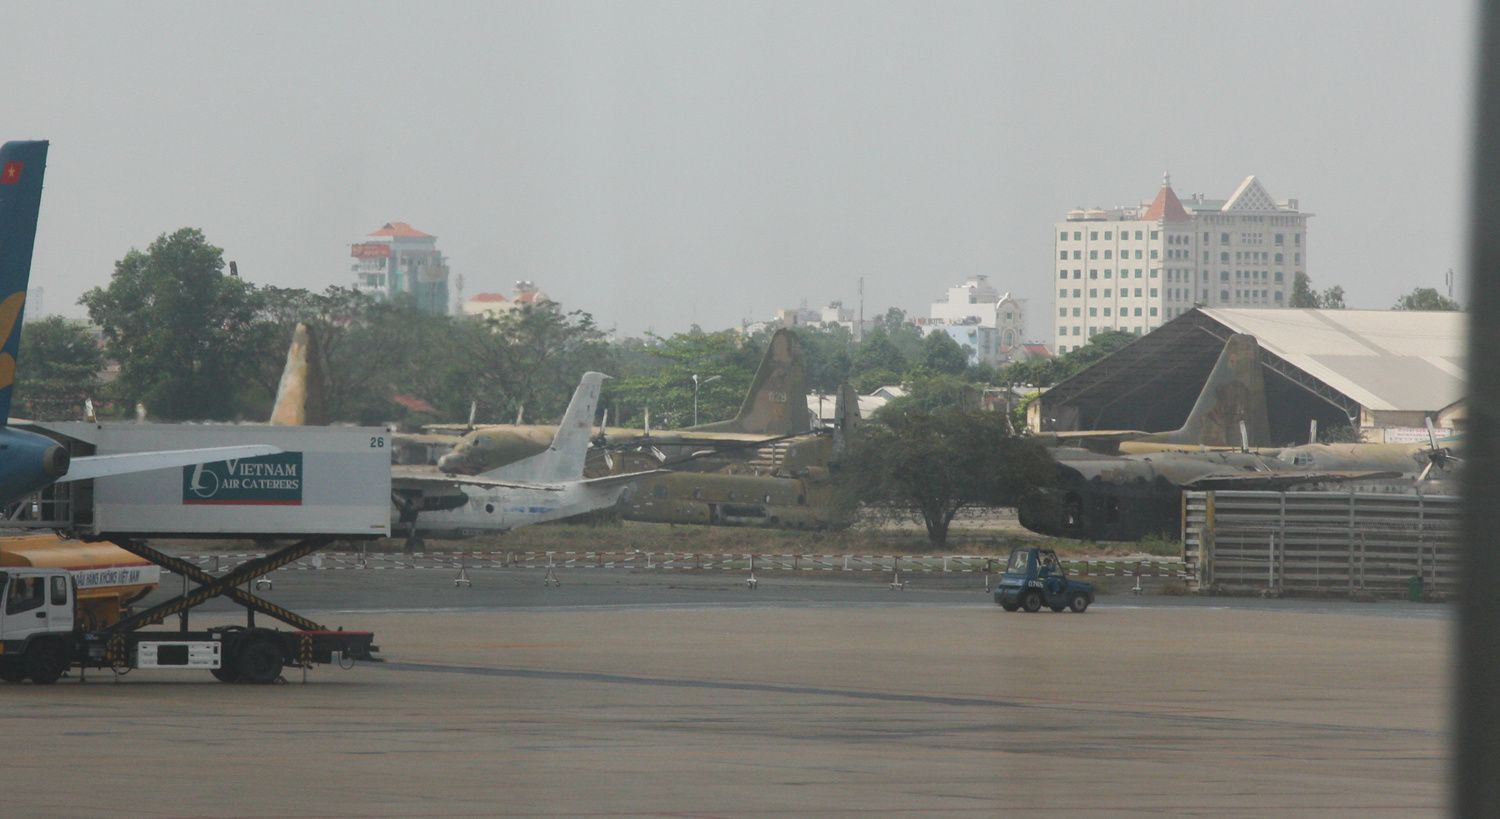 What remained of several C-130s, at least one AC-119 and a CH-47, as it was in 2009.